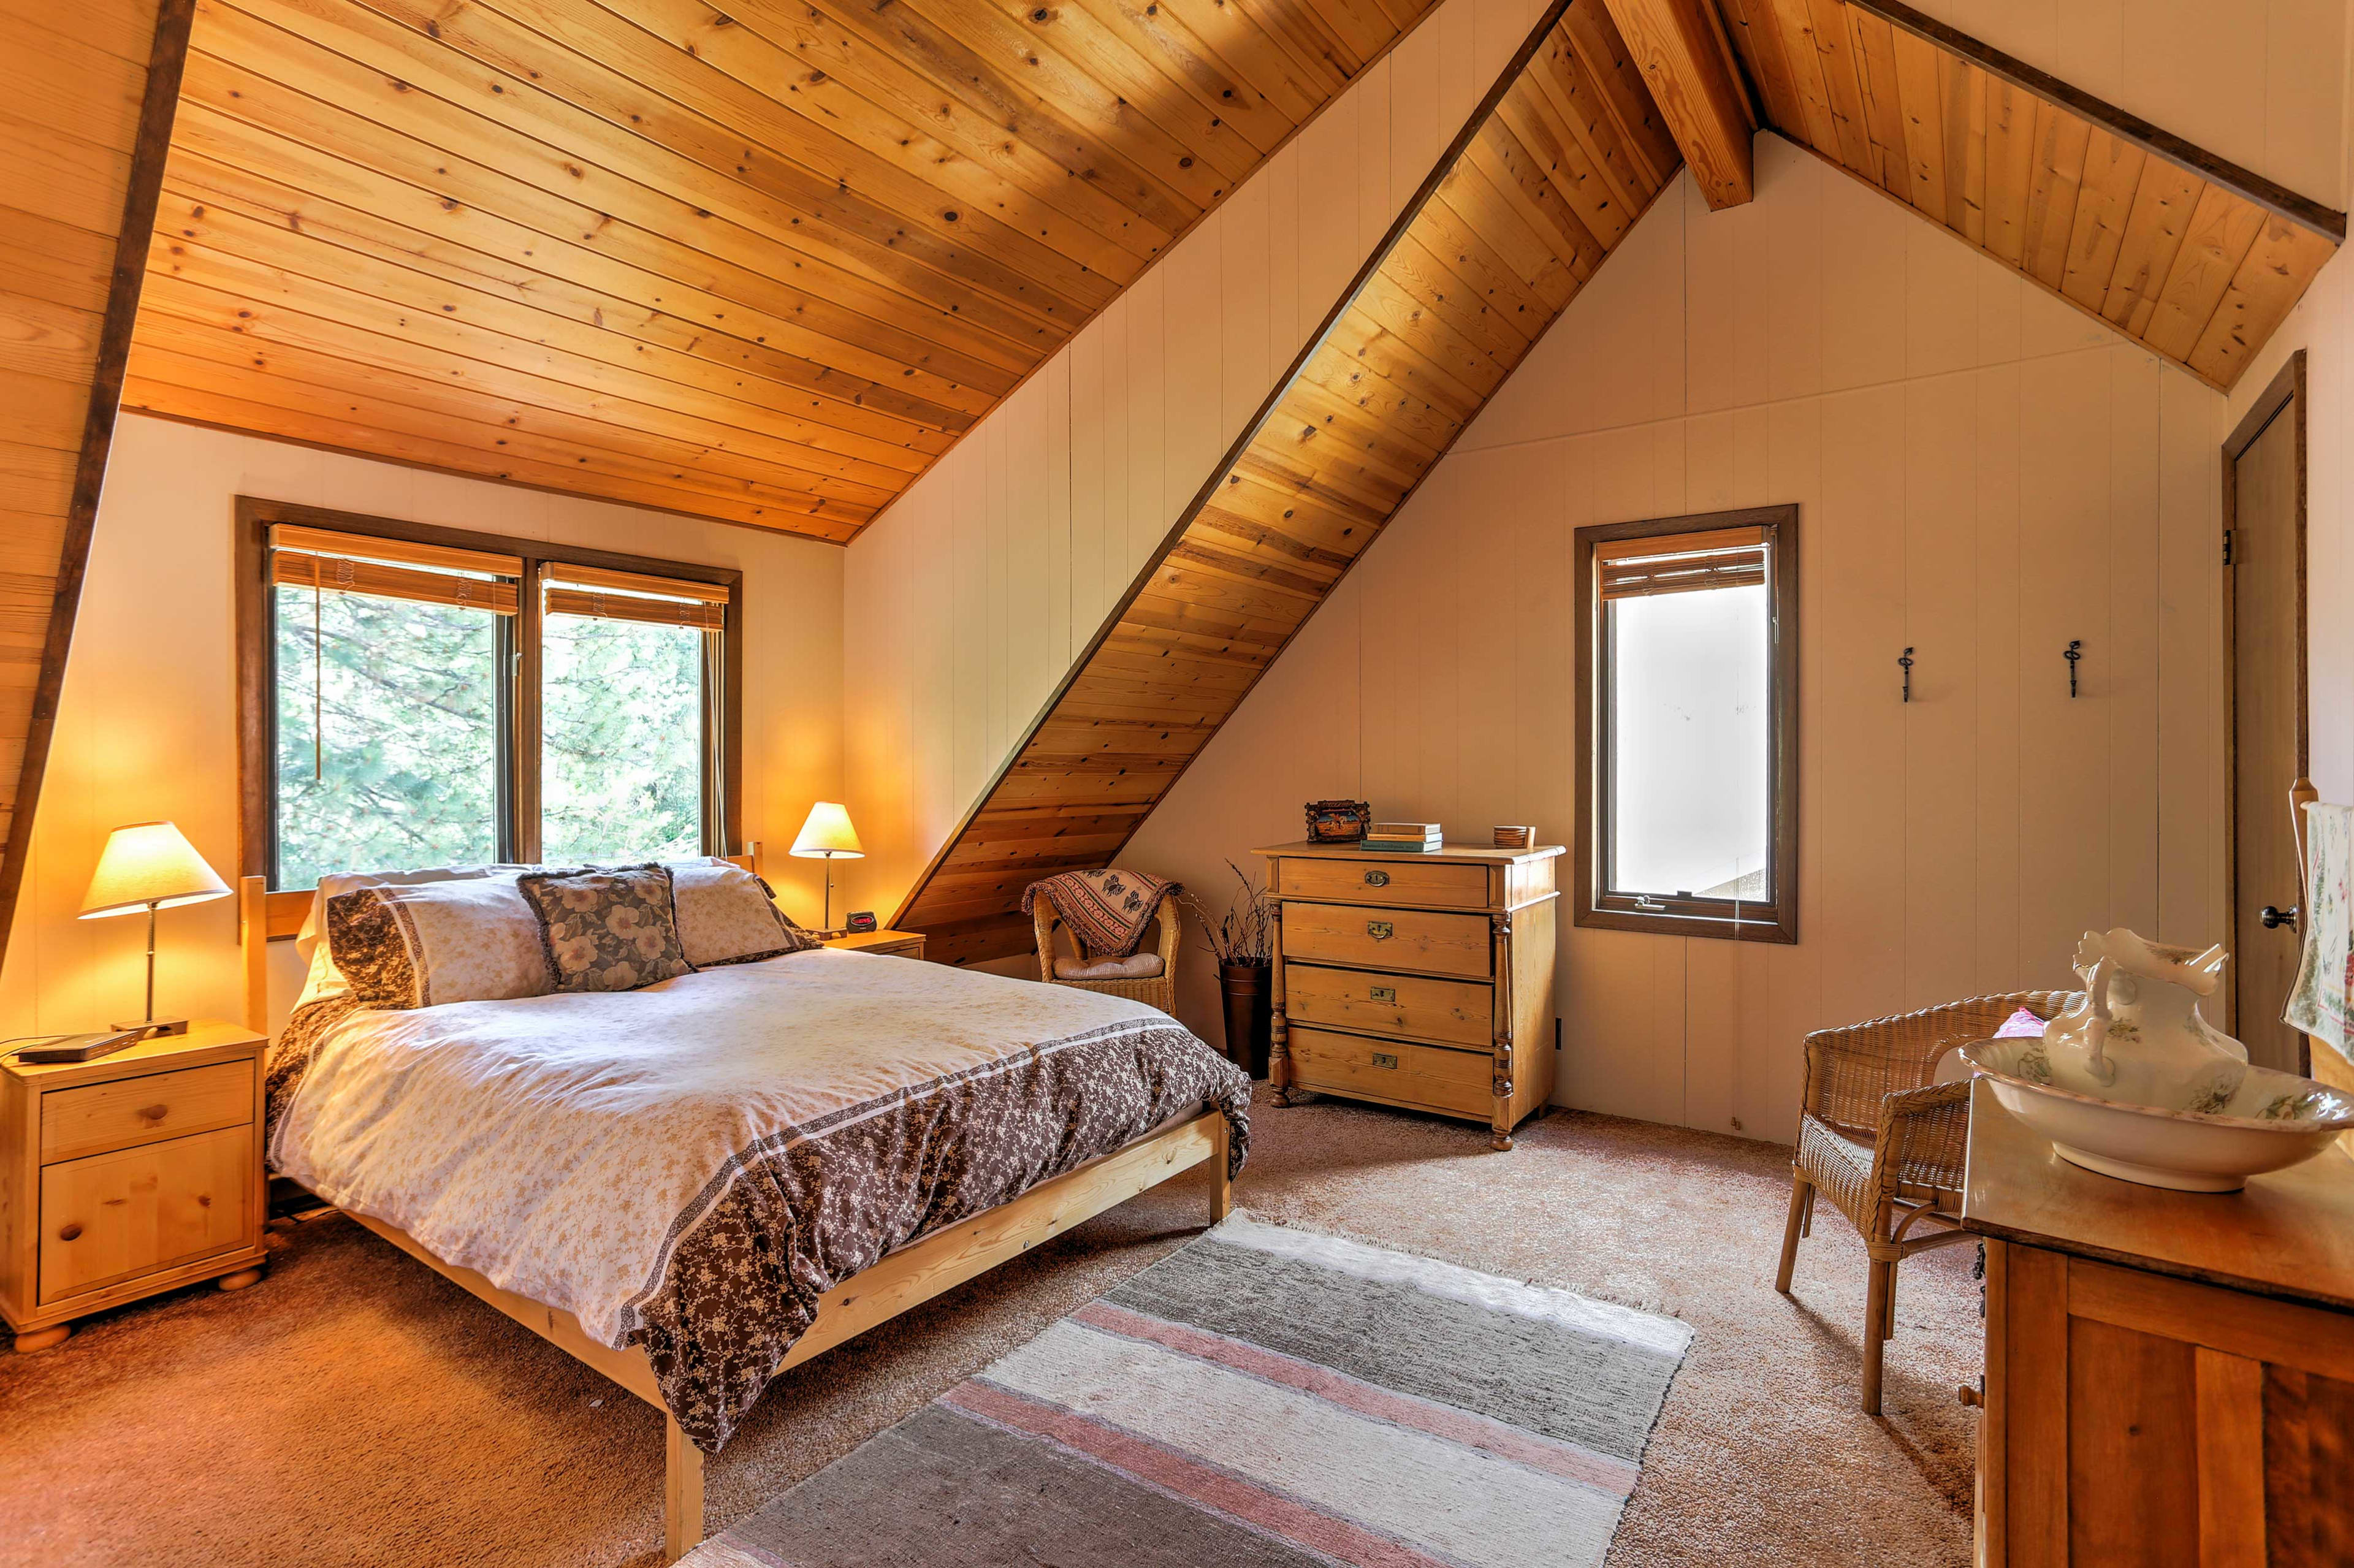 Two guests will sleep comfortably in the queen-sized bed in the master bedroom.